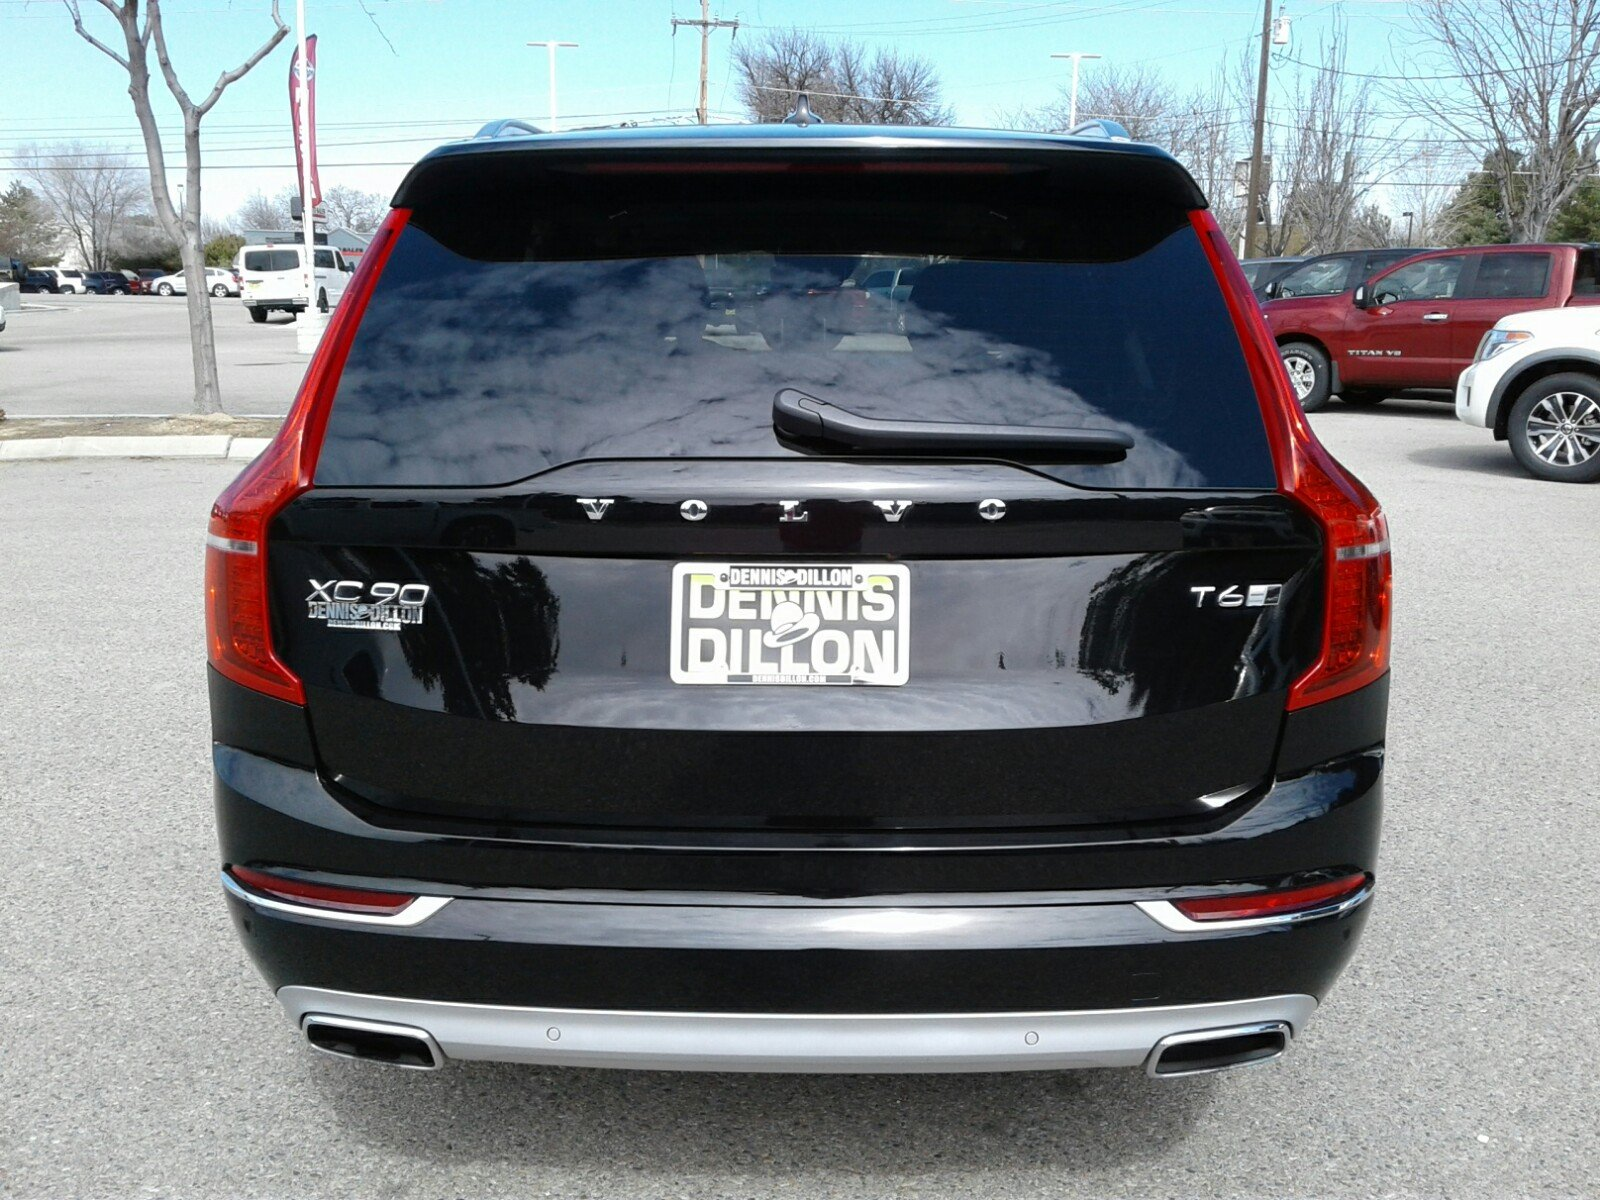 2019 Volvo Xc60 T6 Inscription New Pre Owned 2019 Volvo Xc90 Inscription with Navigation & Awd